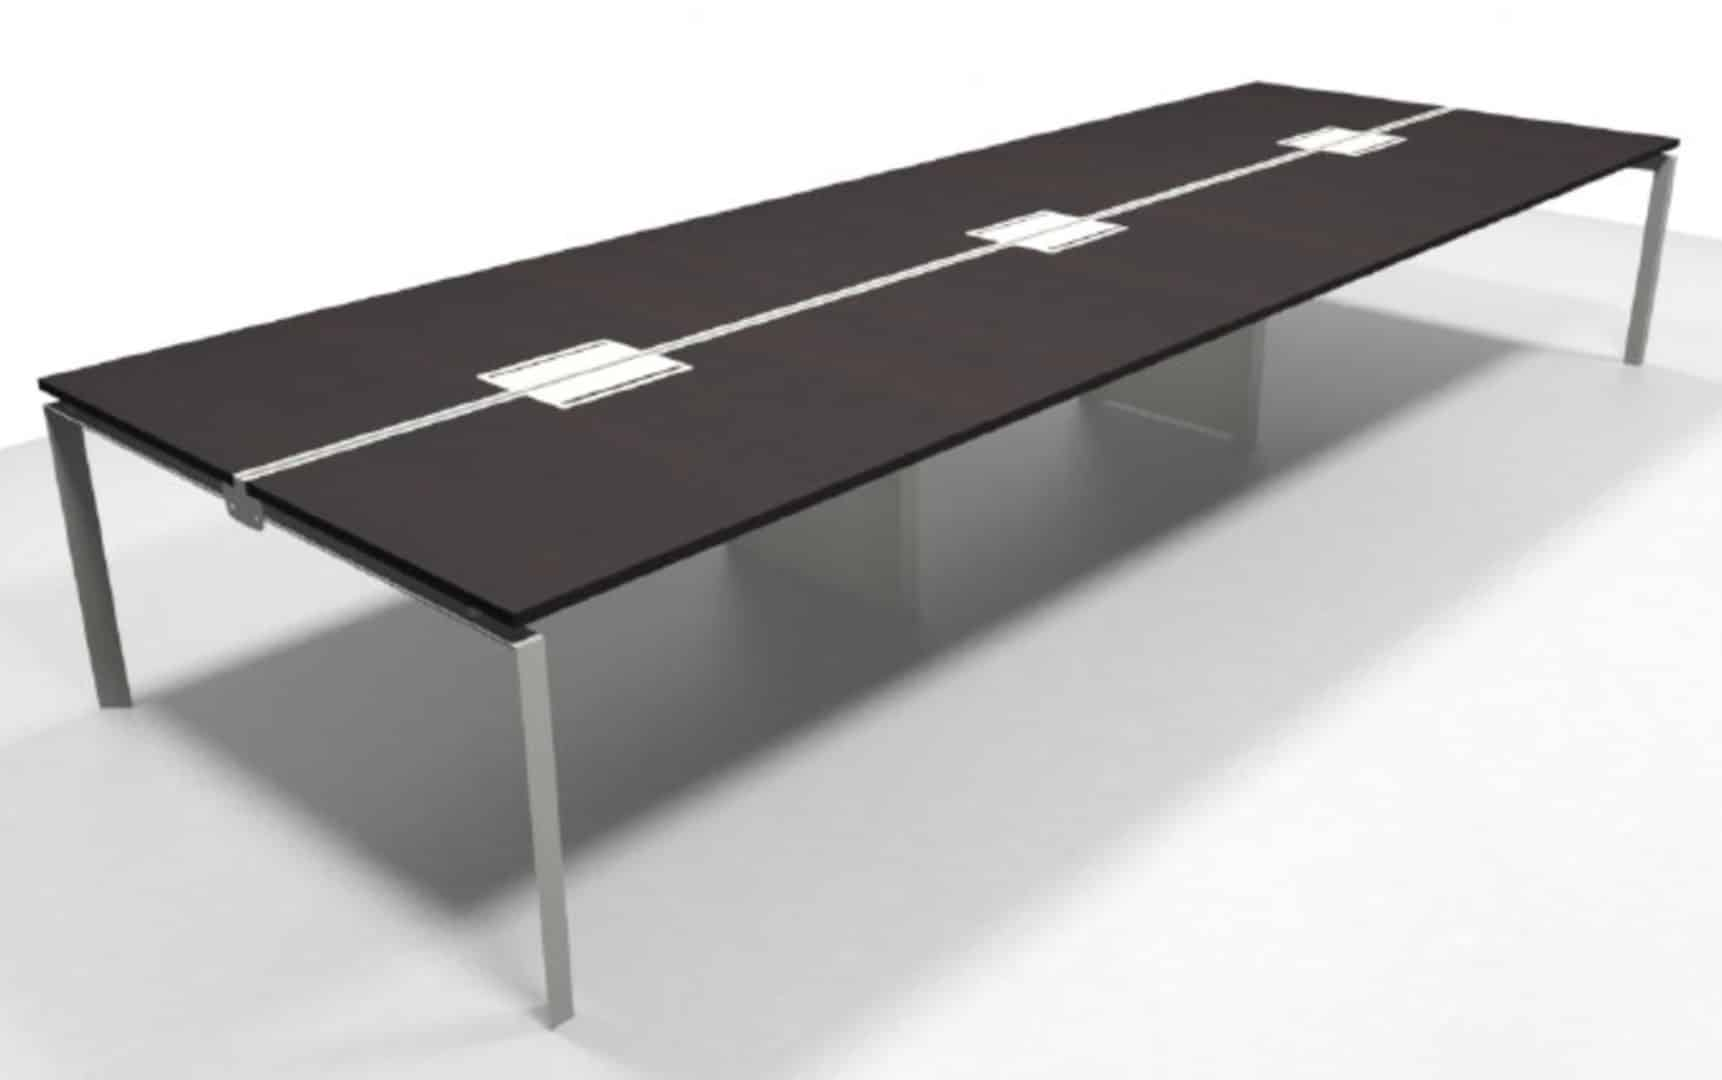 office work surfaces. Office Work Surfaces. 30x60 Furniture Worksurfaces Surfaces U